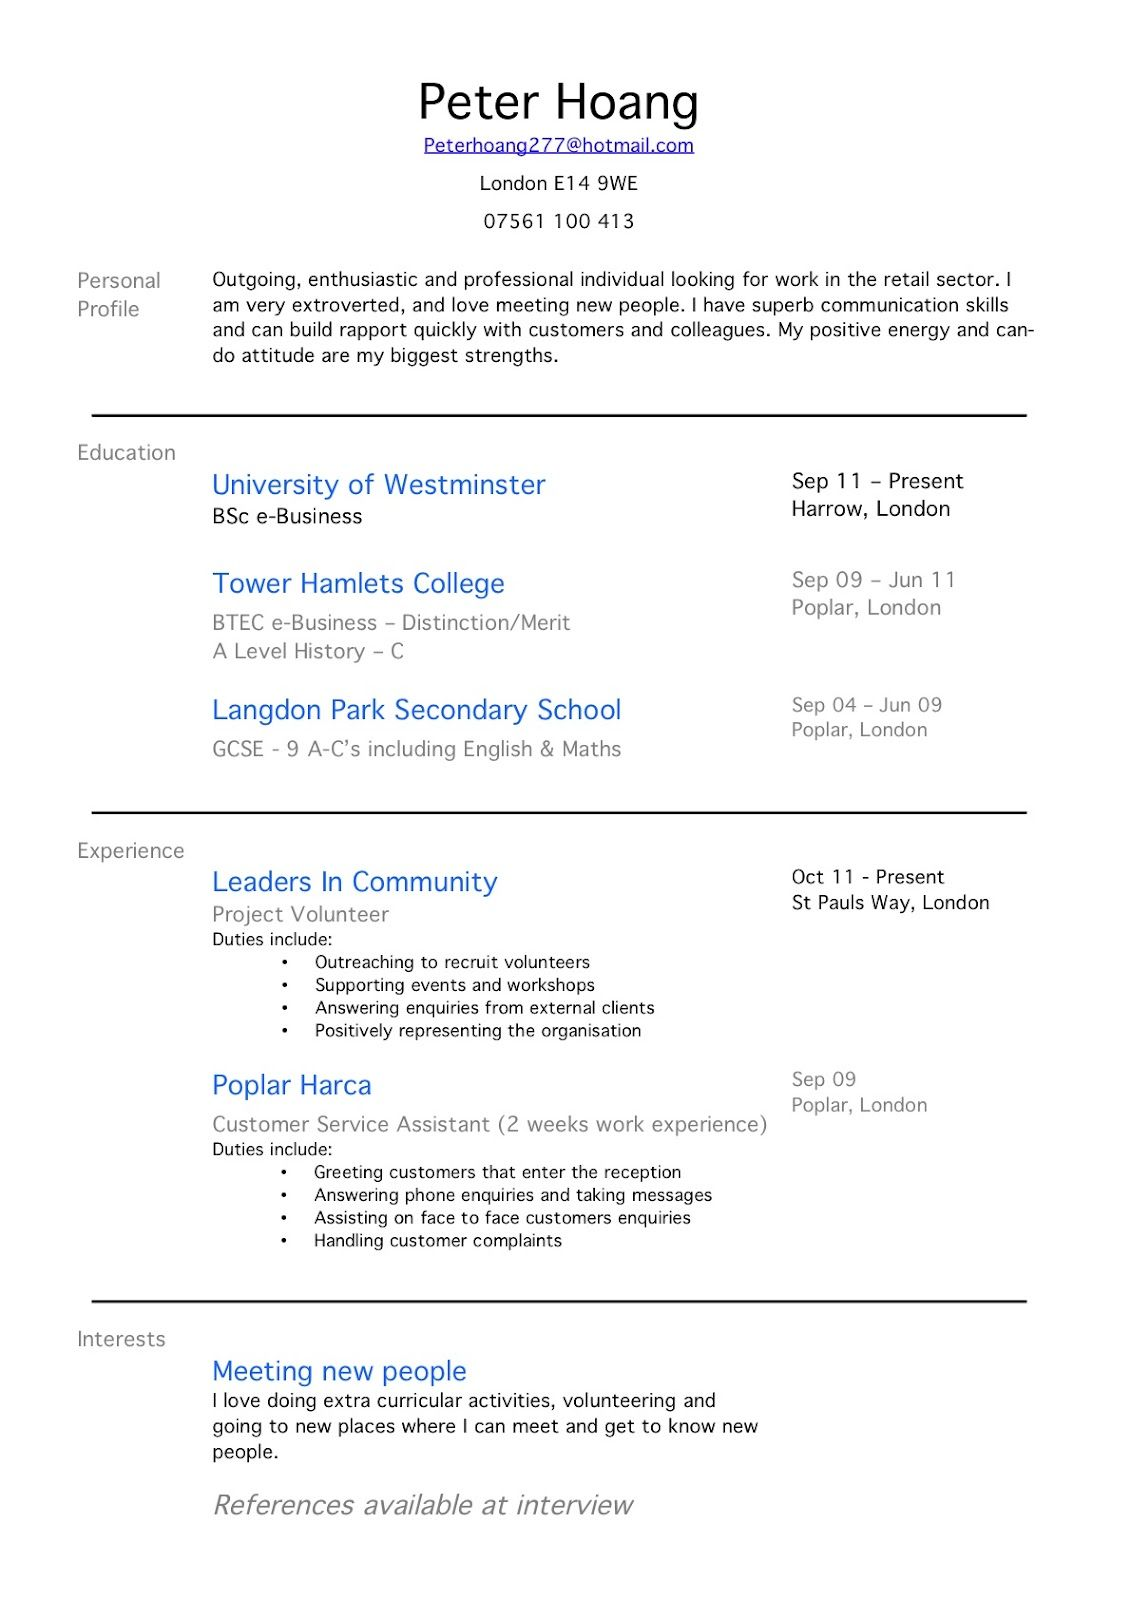 Resume Job Experience How To Write A Teacher Resume With No Experience  Resume Examples